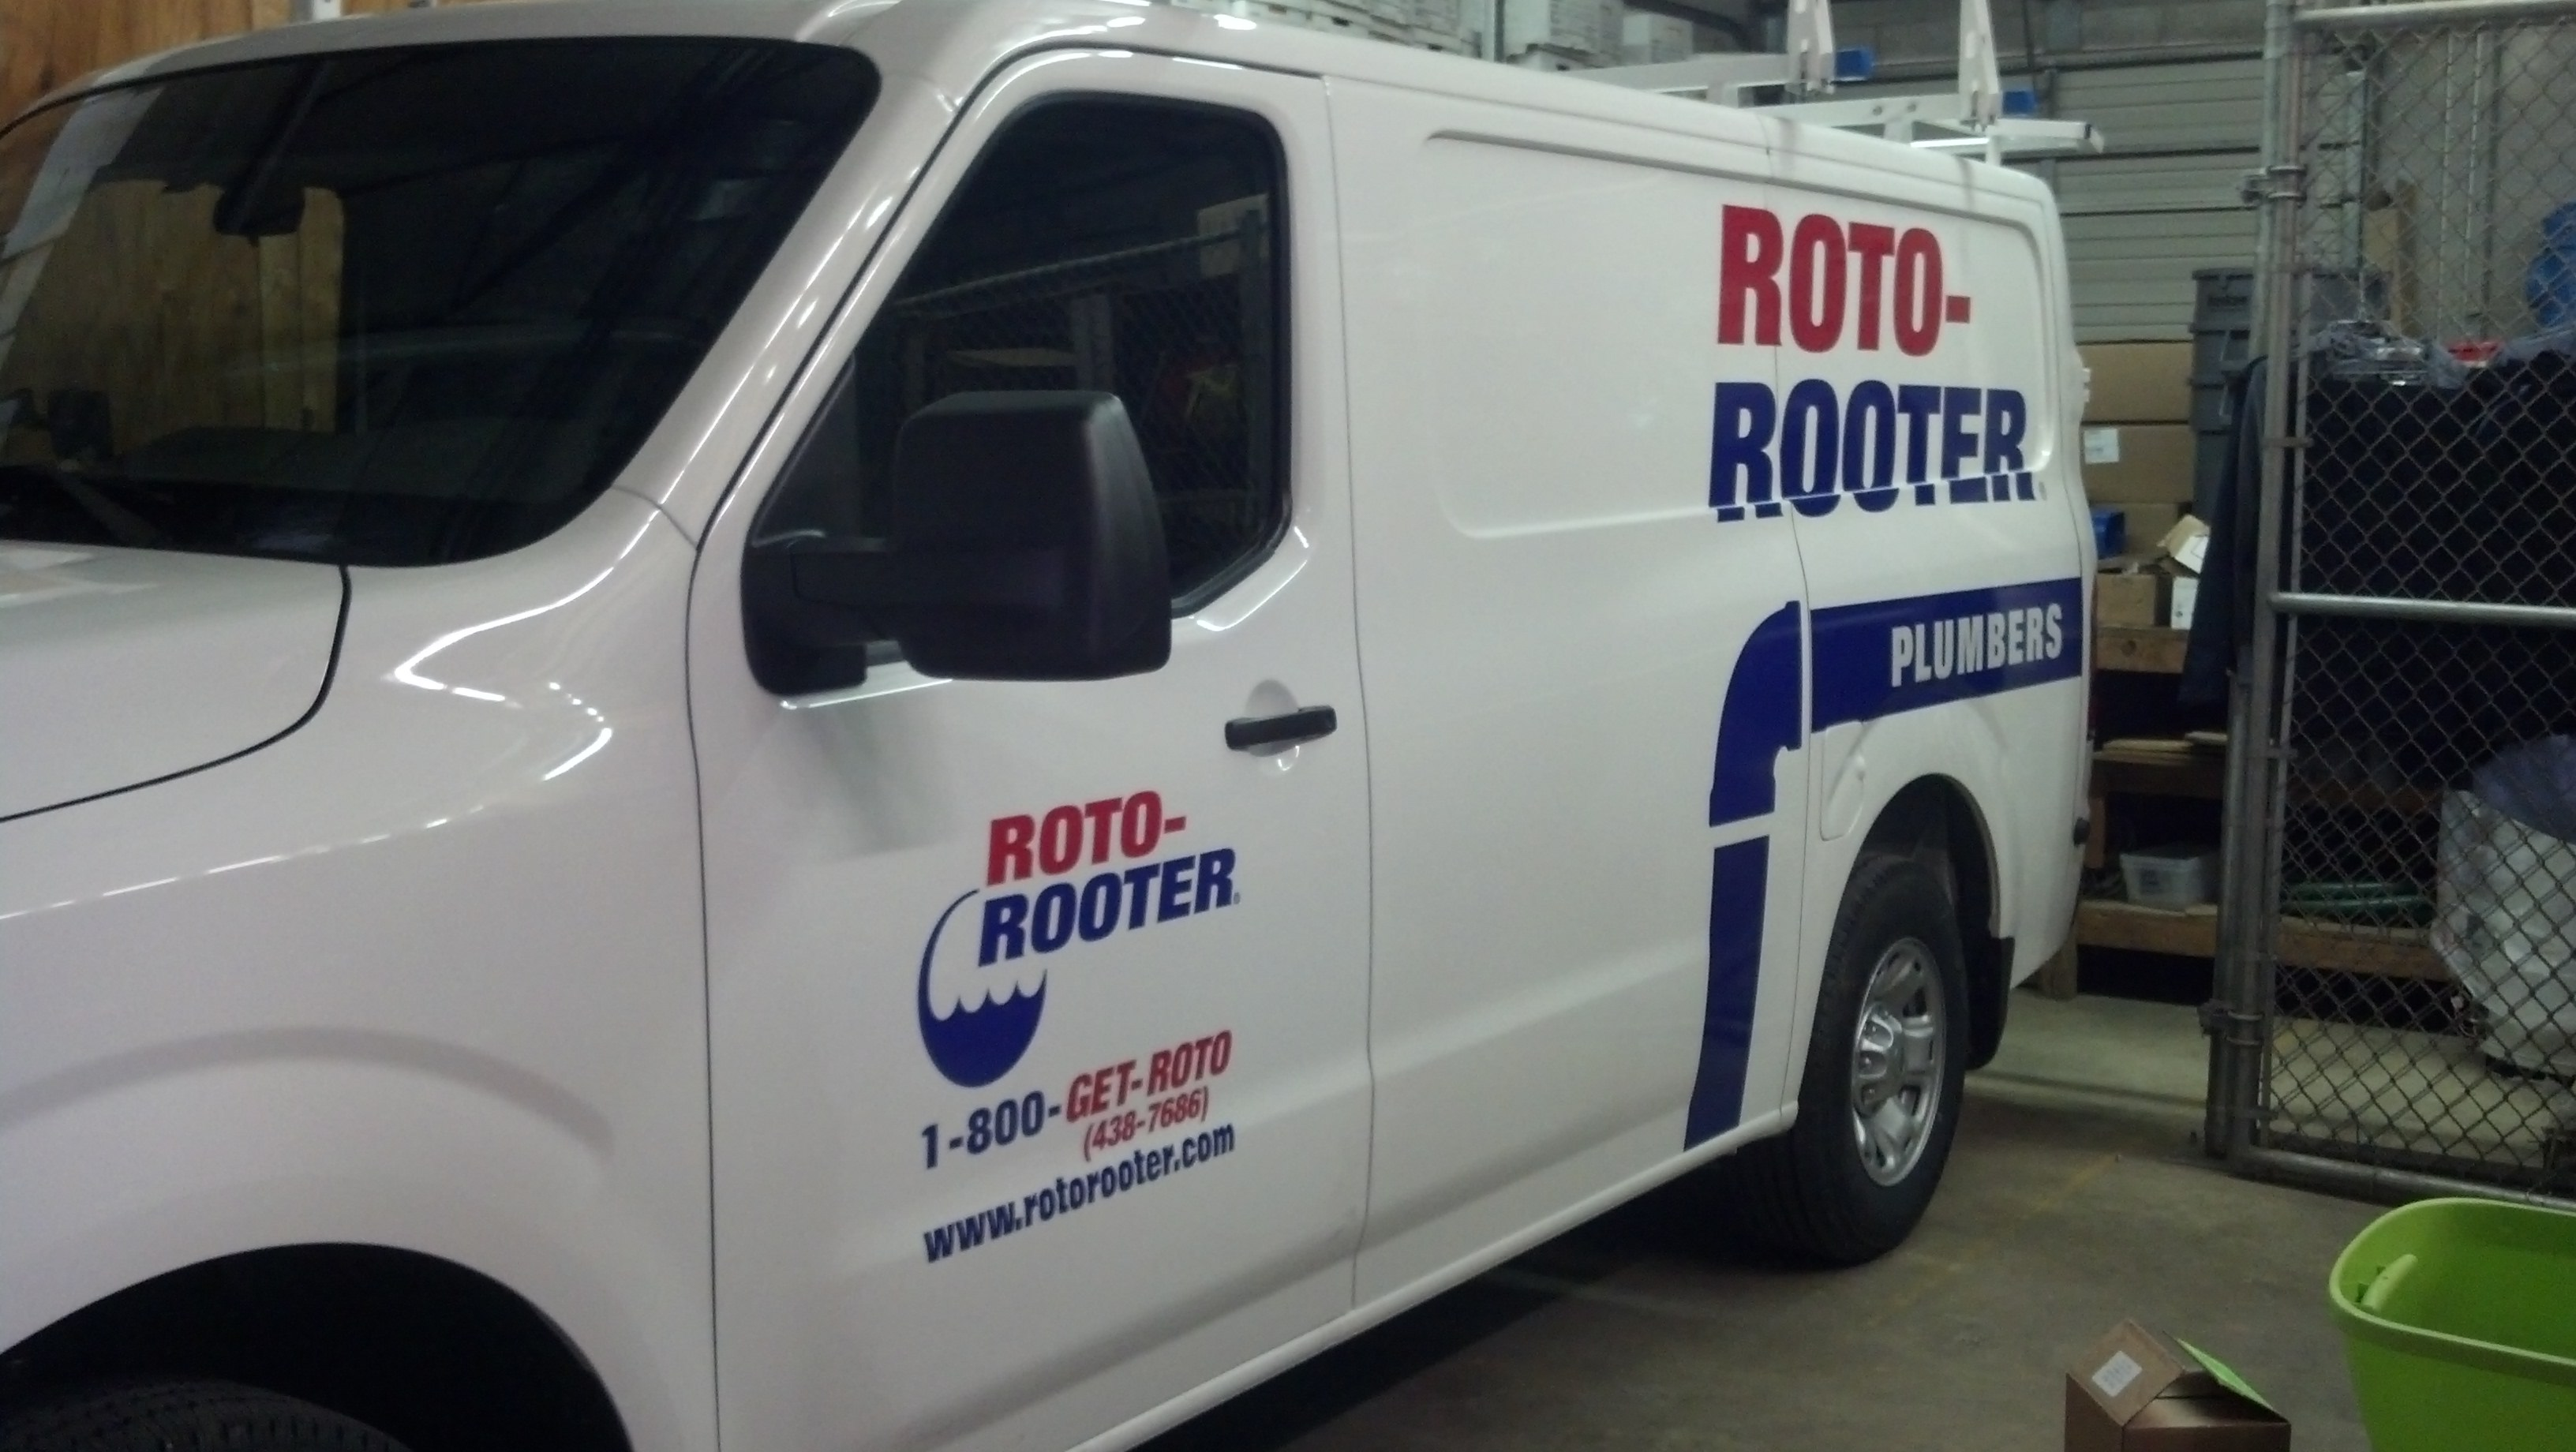 Capital Ford Raleigh >> Roto-Rooter large van graphics installations | Signergy